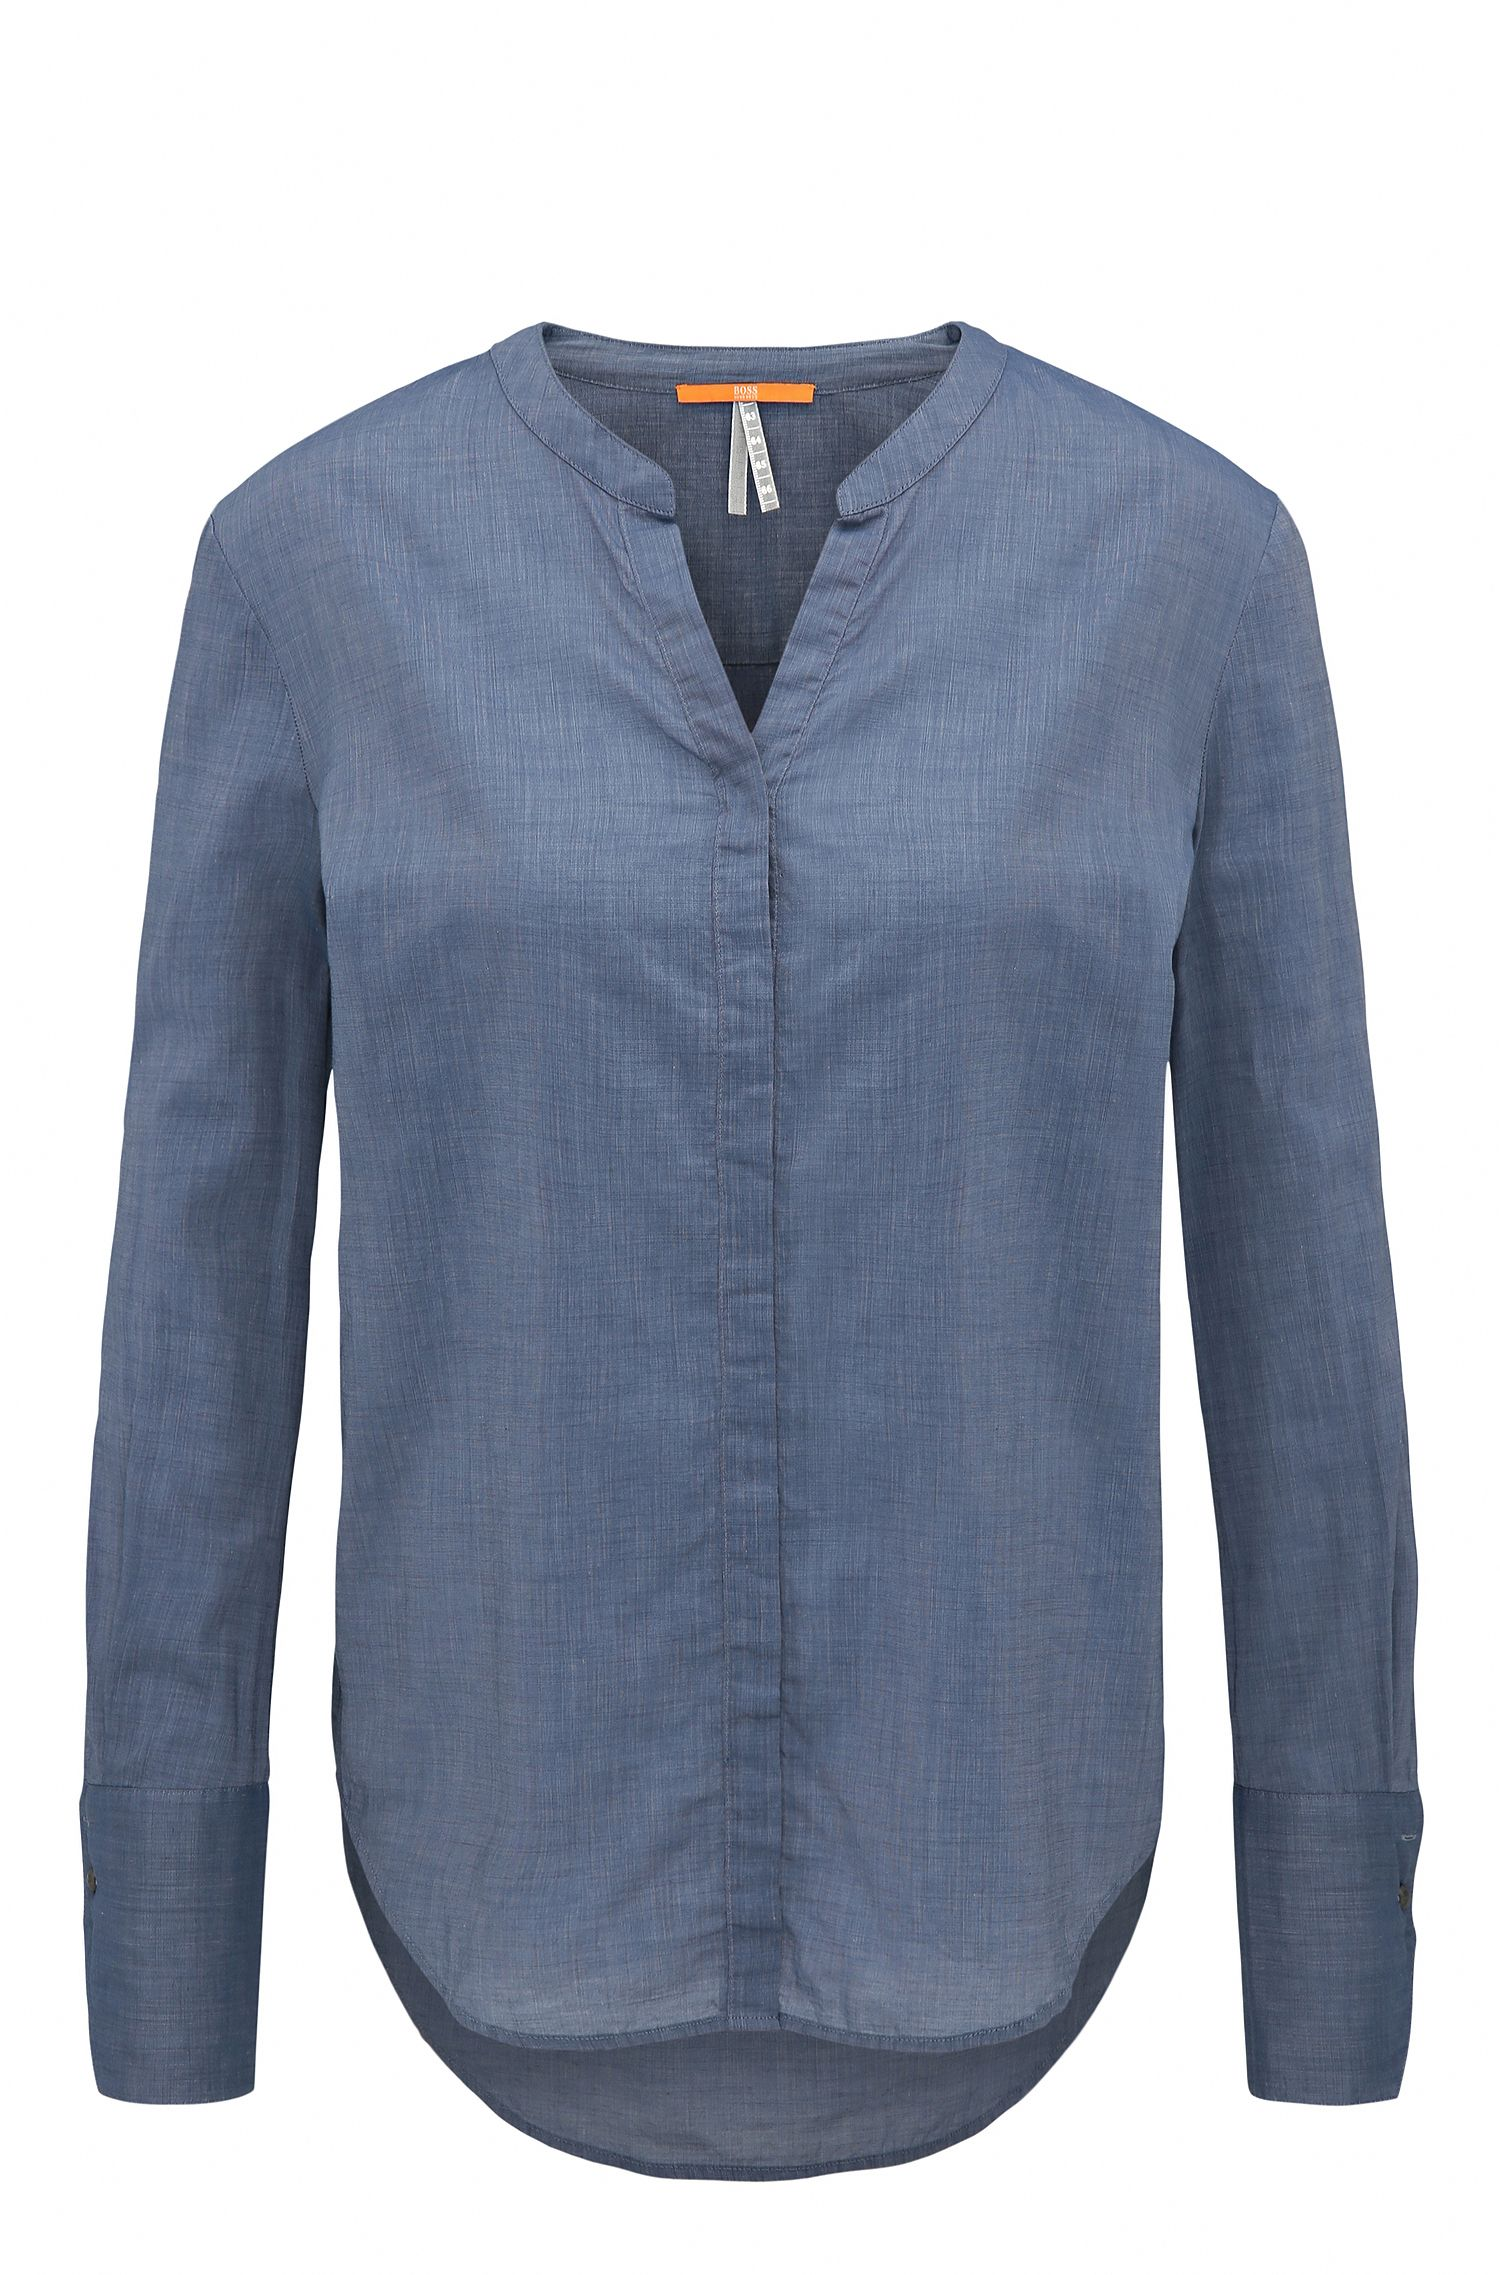 Chemisier Regular Fit en chambray de coton mélangé